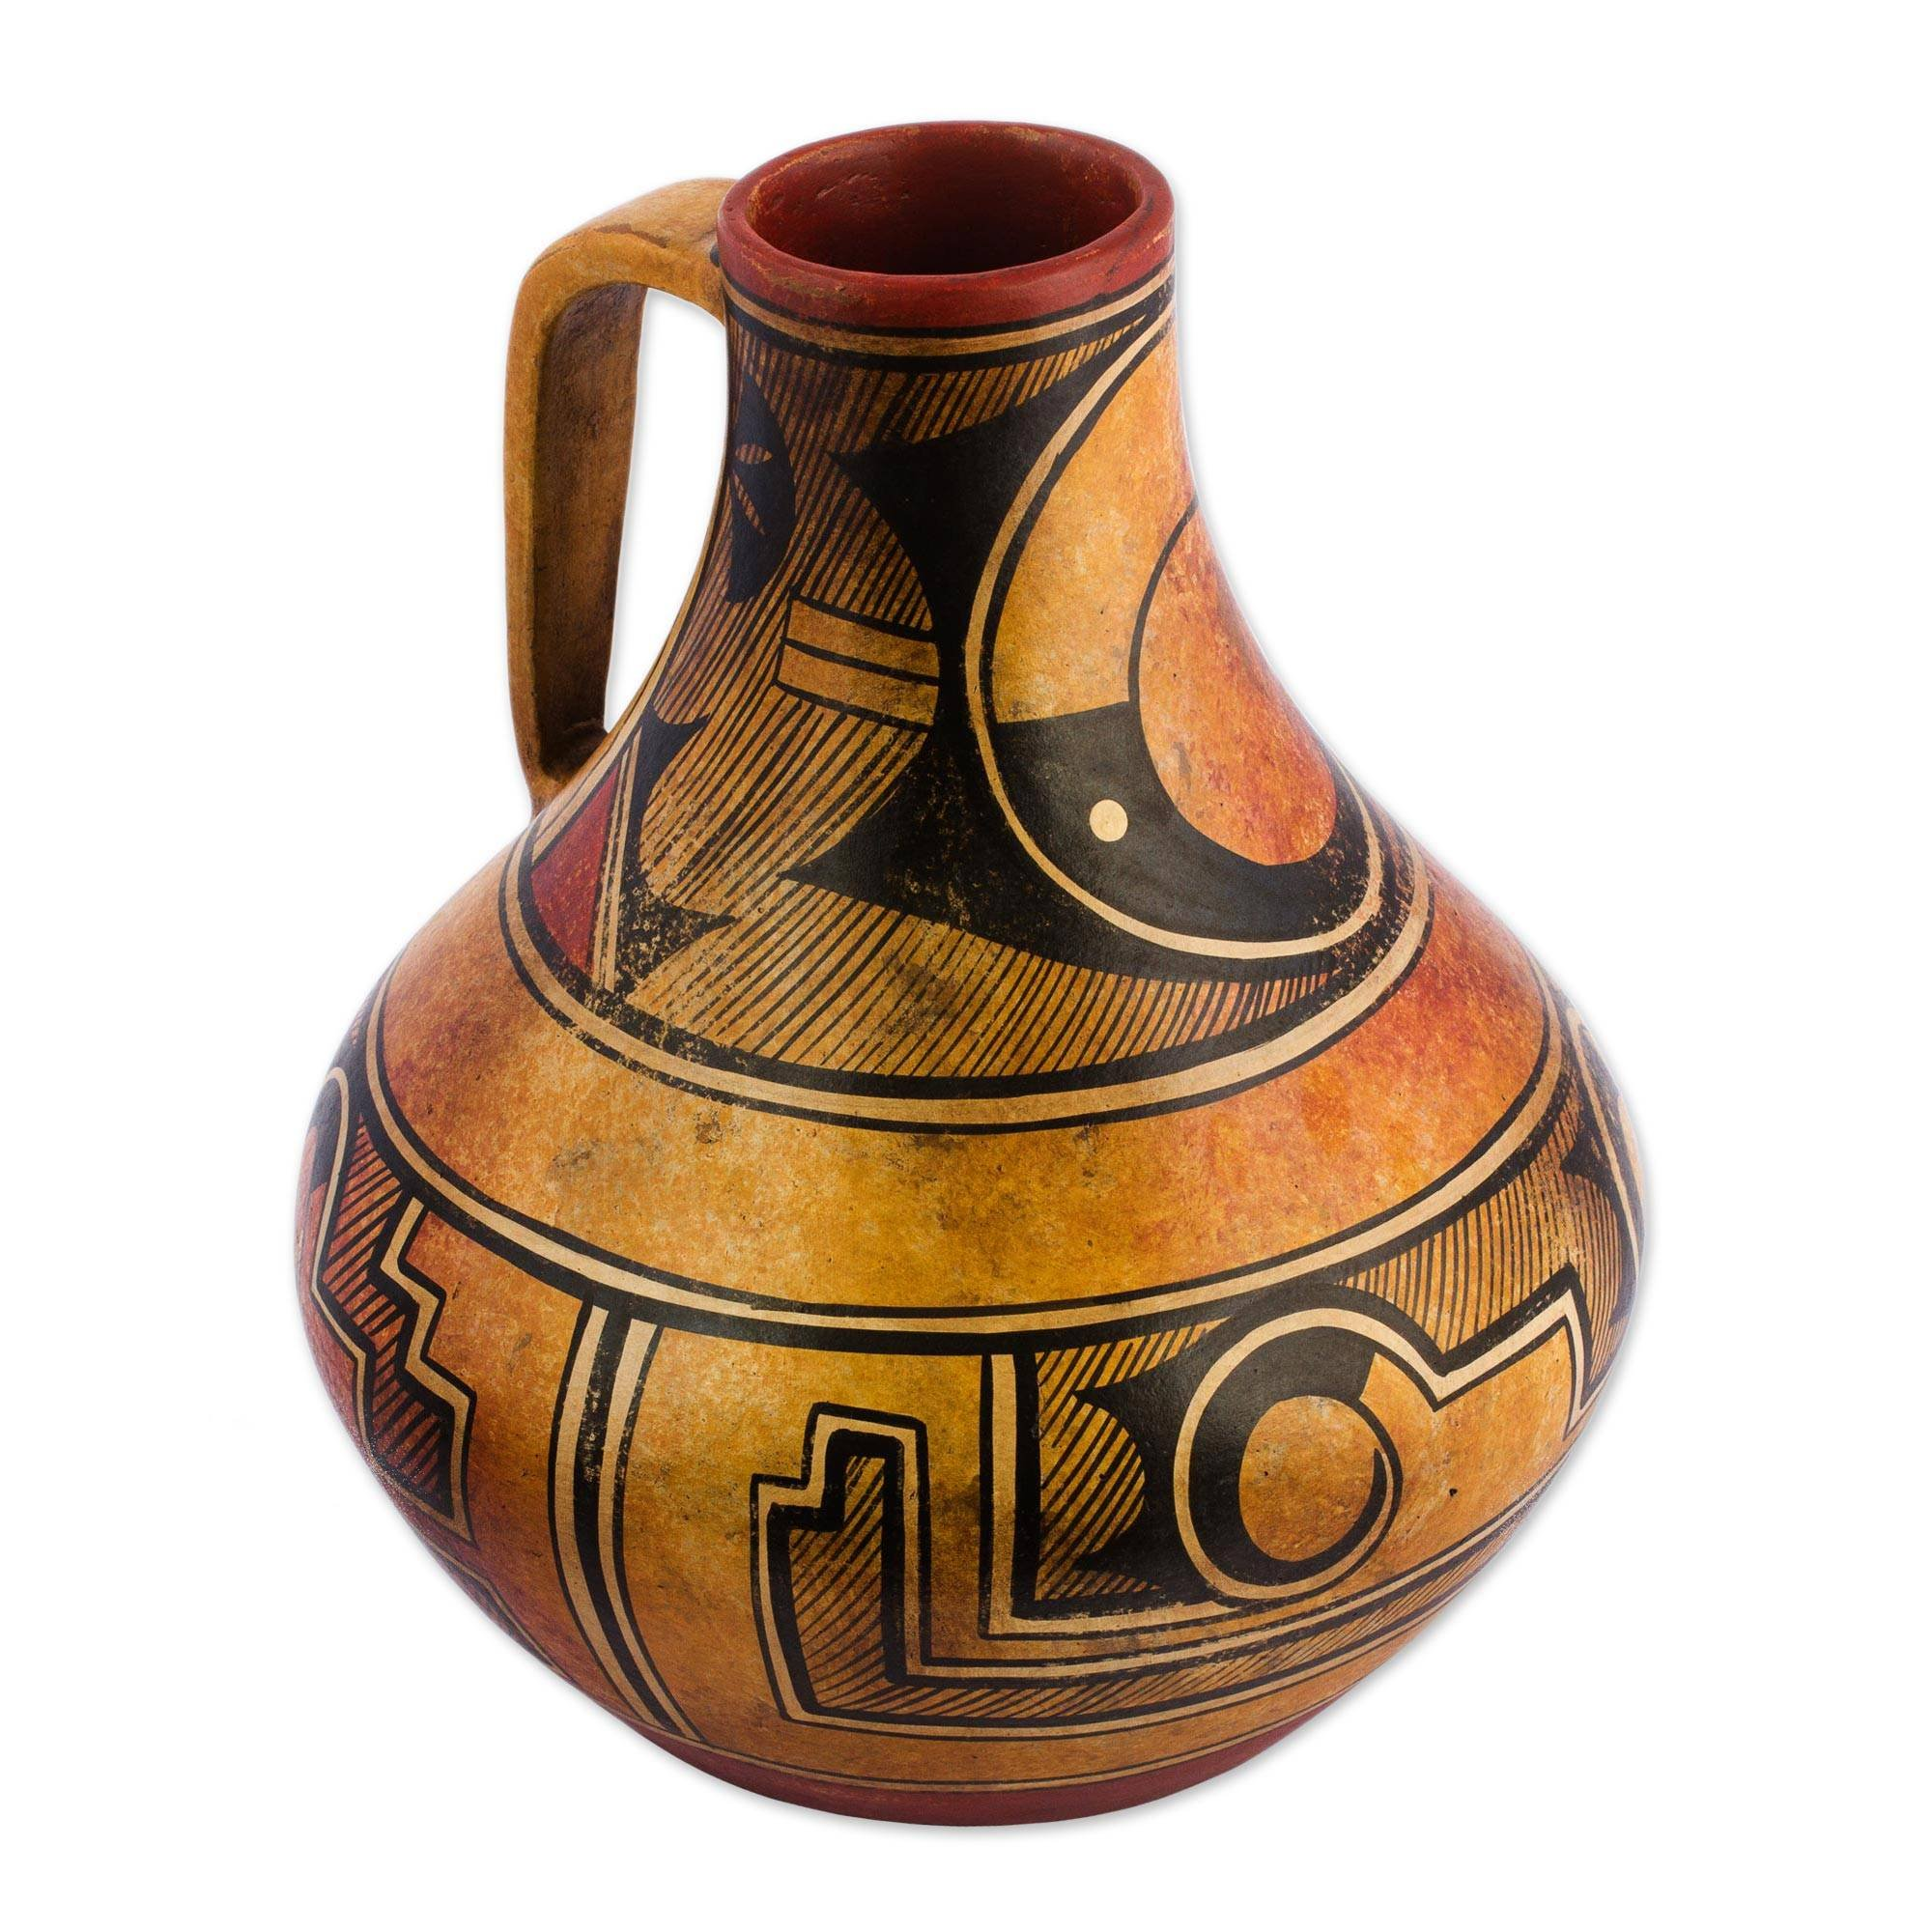 NOVICA Archaeological Large Ceramic Vase, Multicolor, 'Legacy Of The North'